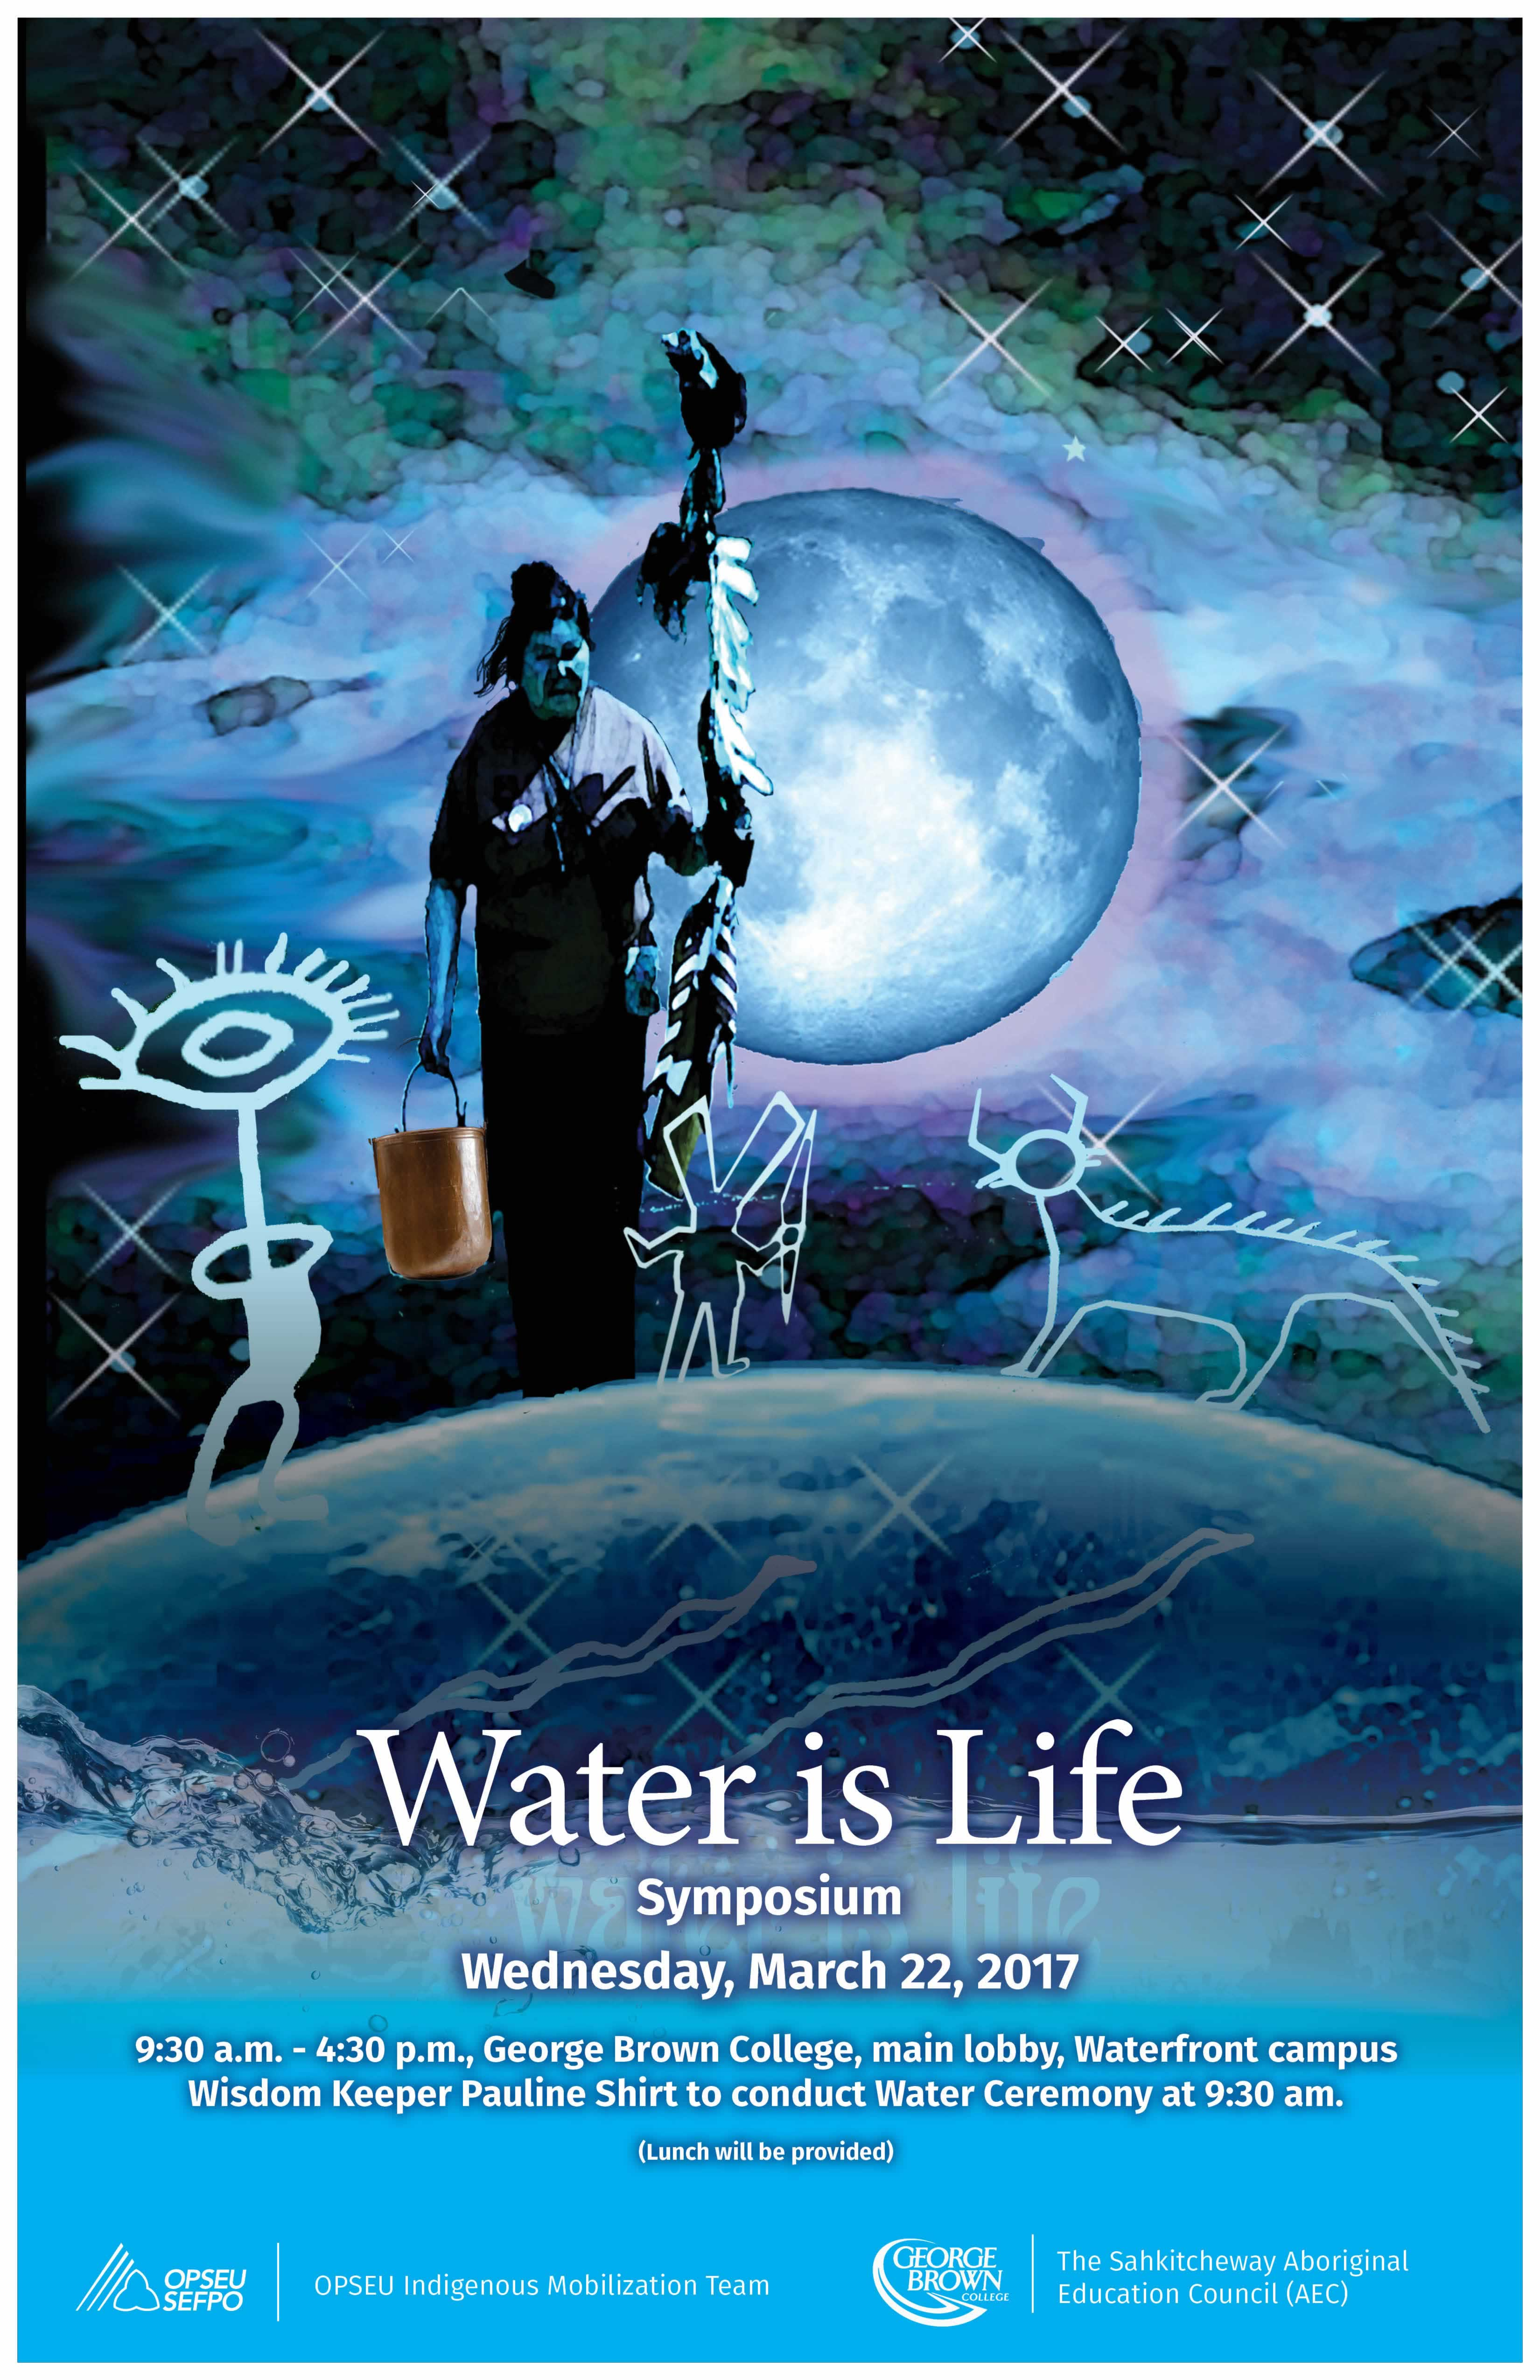 Poster created by Tannis Nielsen, Cree artist